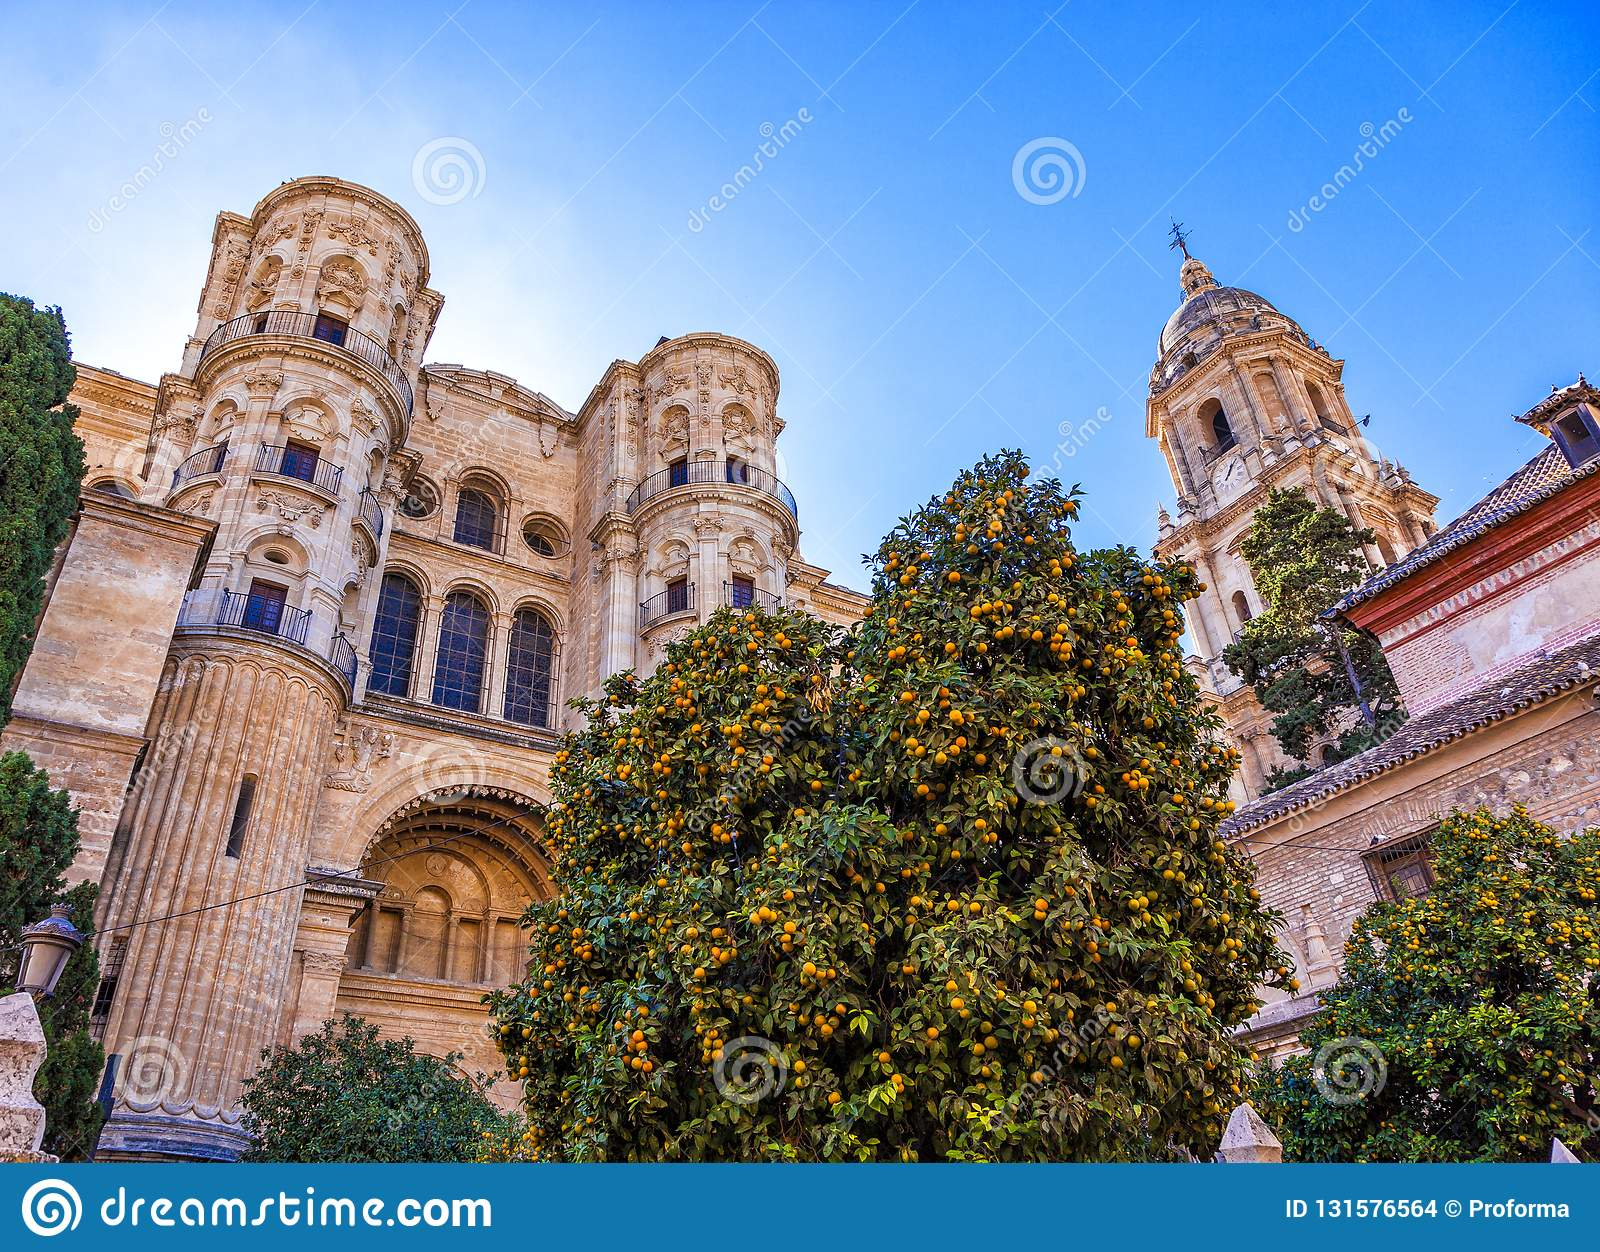 Facade and bell tower of the Cathedral of Malaga, Spain